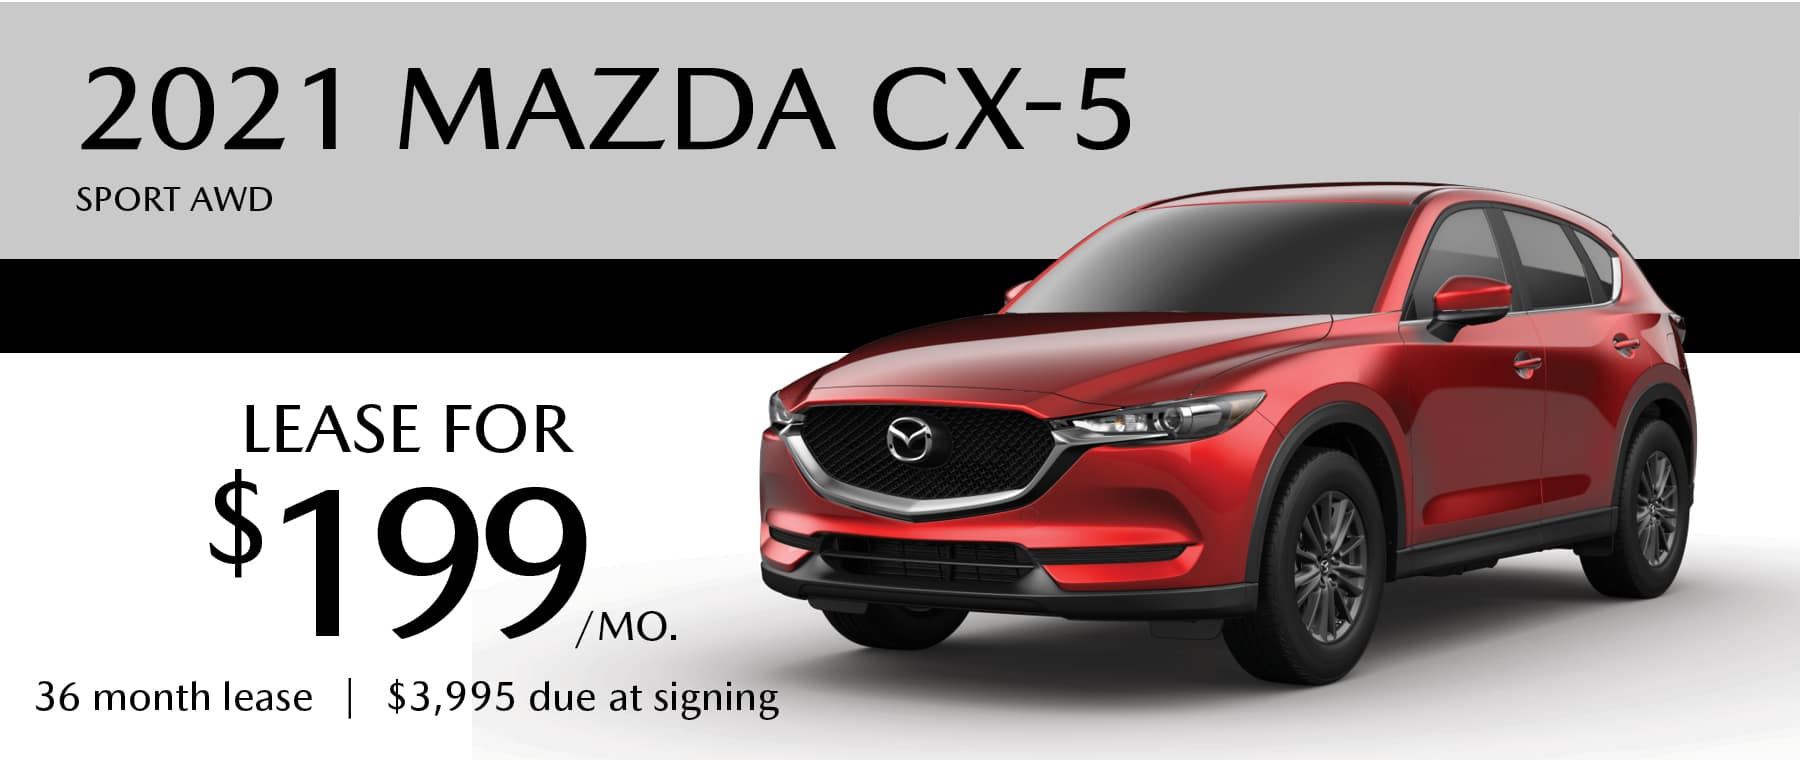 2021 Mazda CX-5 Lease for $199 per month at Smail Mazda